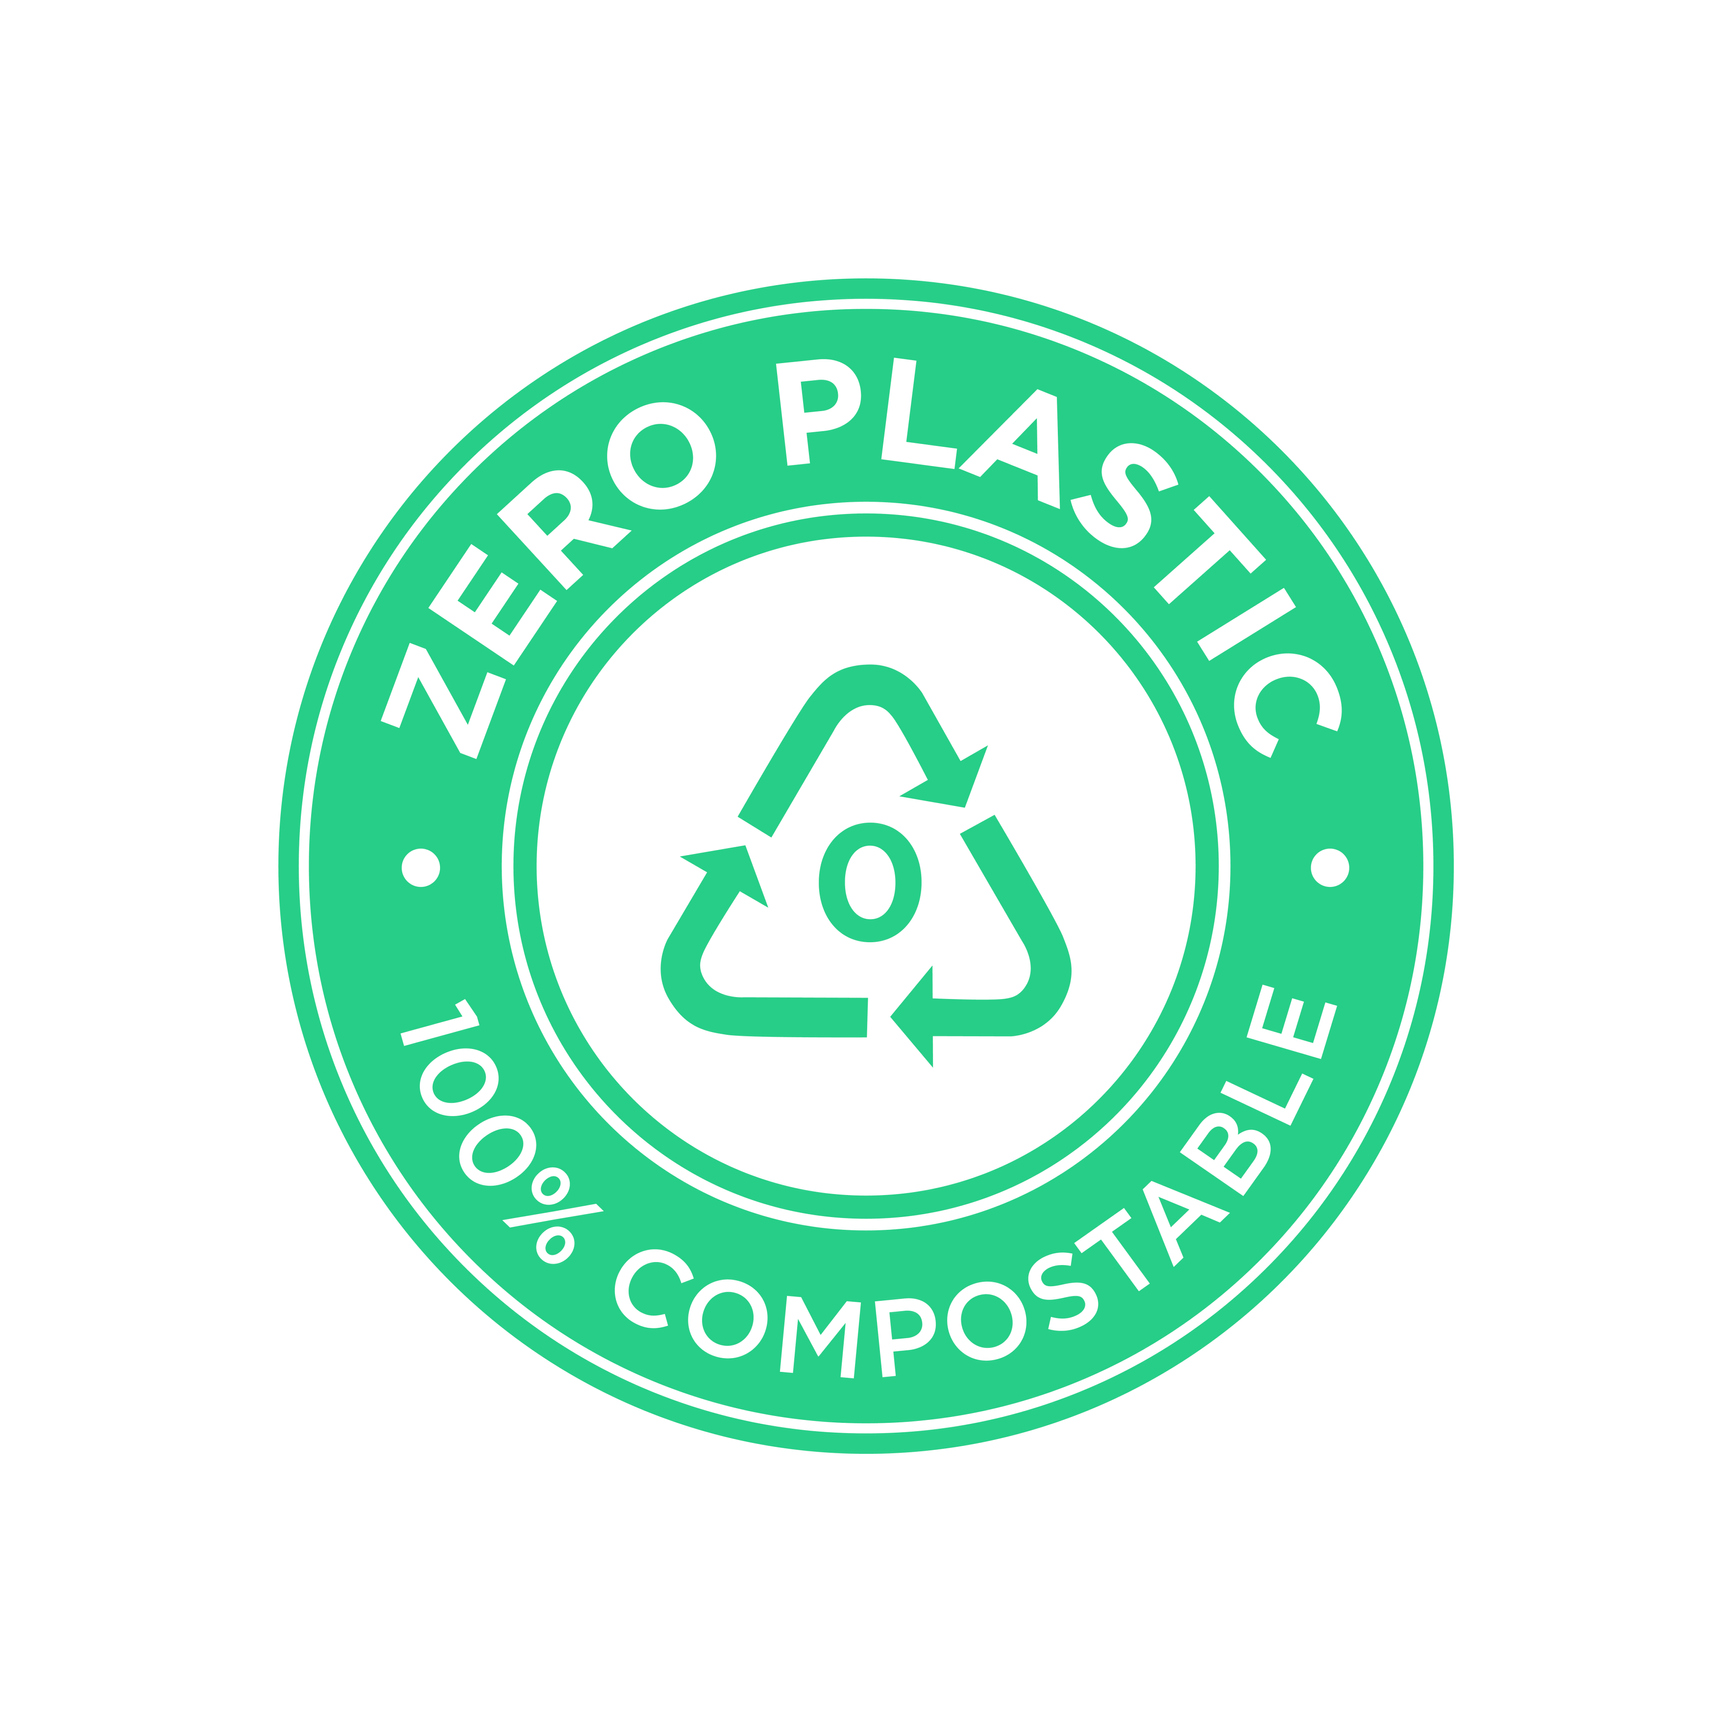 Zero plastic icon. 100% compostable symbol.